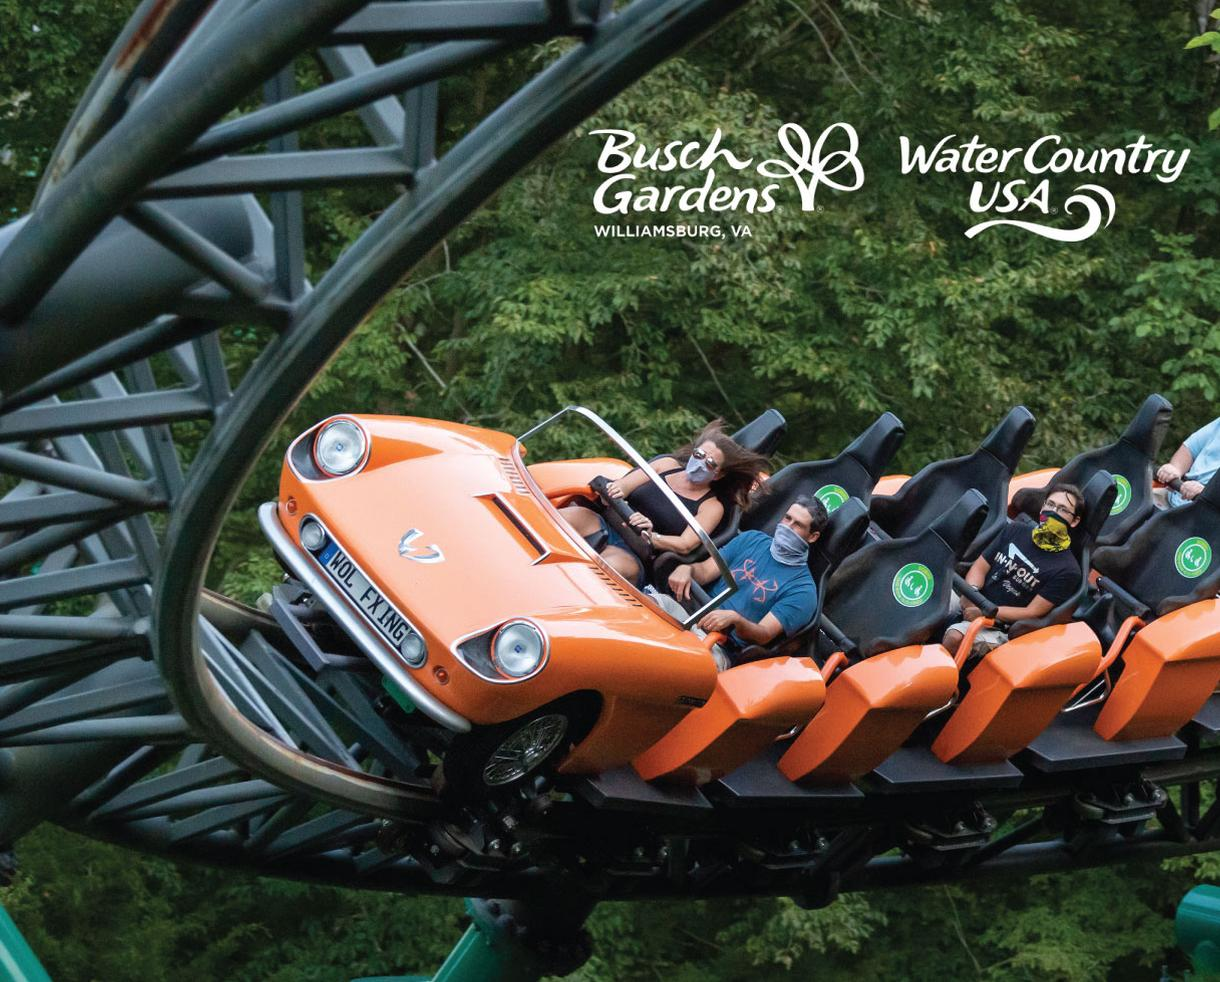 Busch Gardens Williamsburg + Water Country USA - Up to 35% Off Admission!